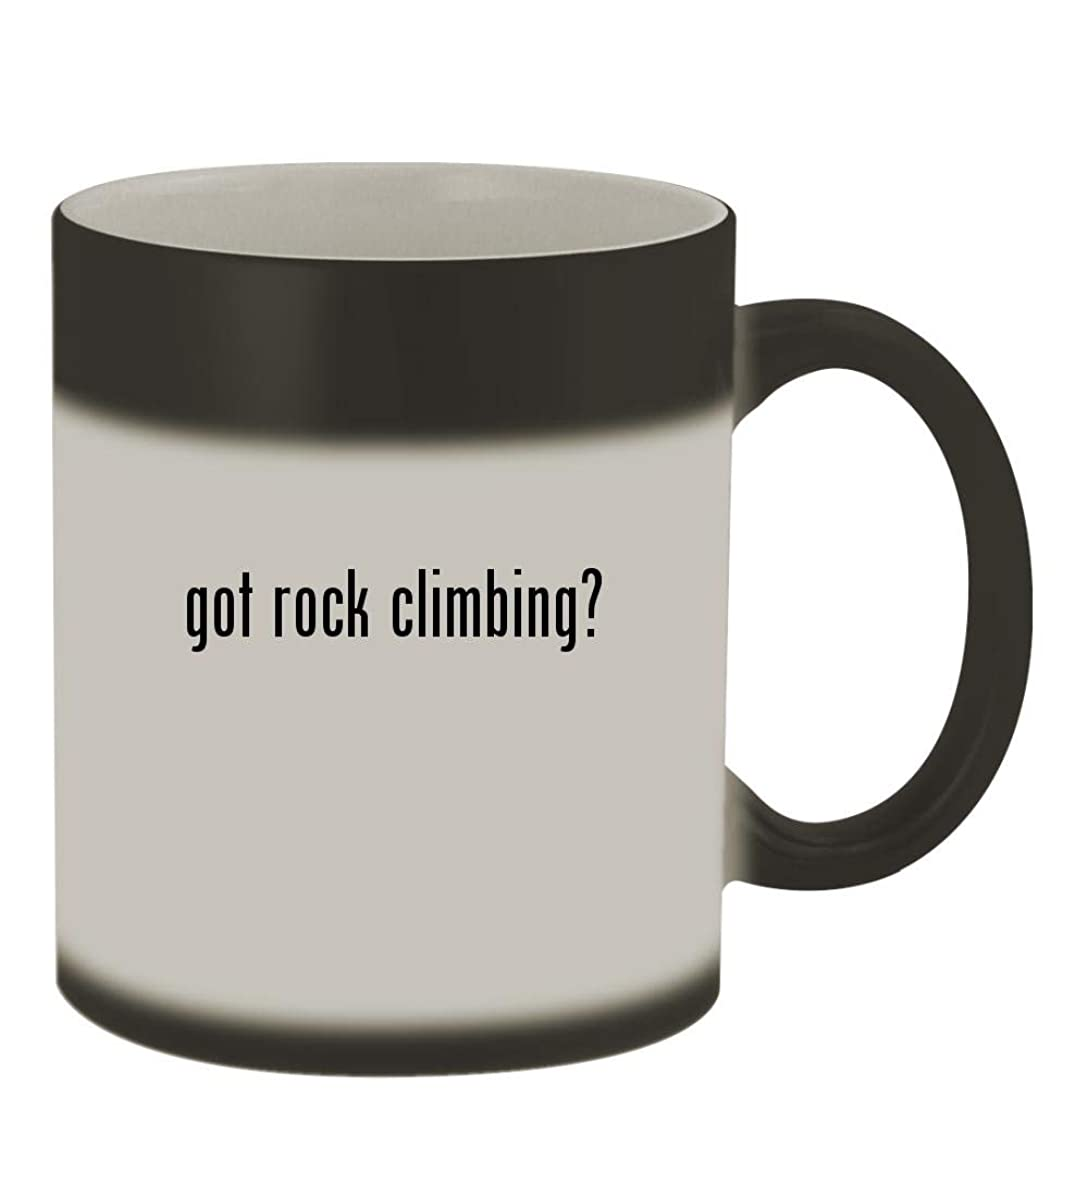 got rock climbing? - 11oz Color Changing Sturdy Ceramic Coffee Cup Mug, Matte Black